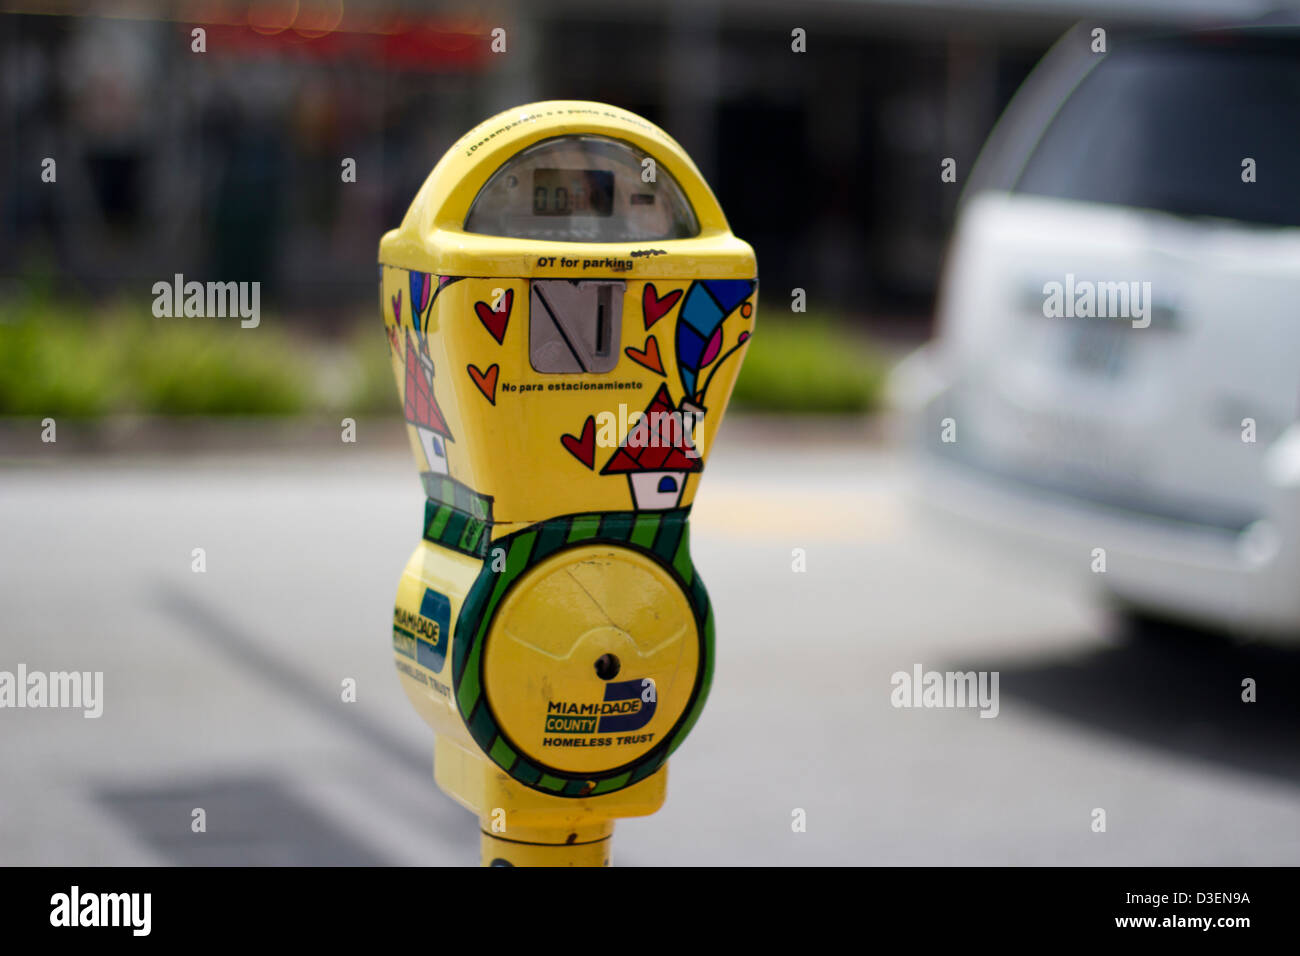 Parking meter for charity - Stock Image